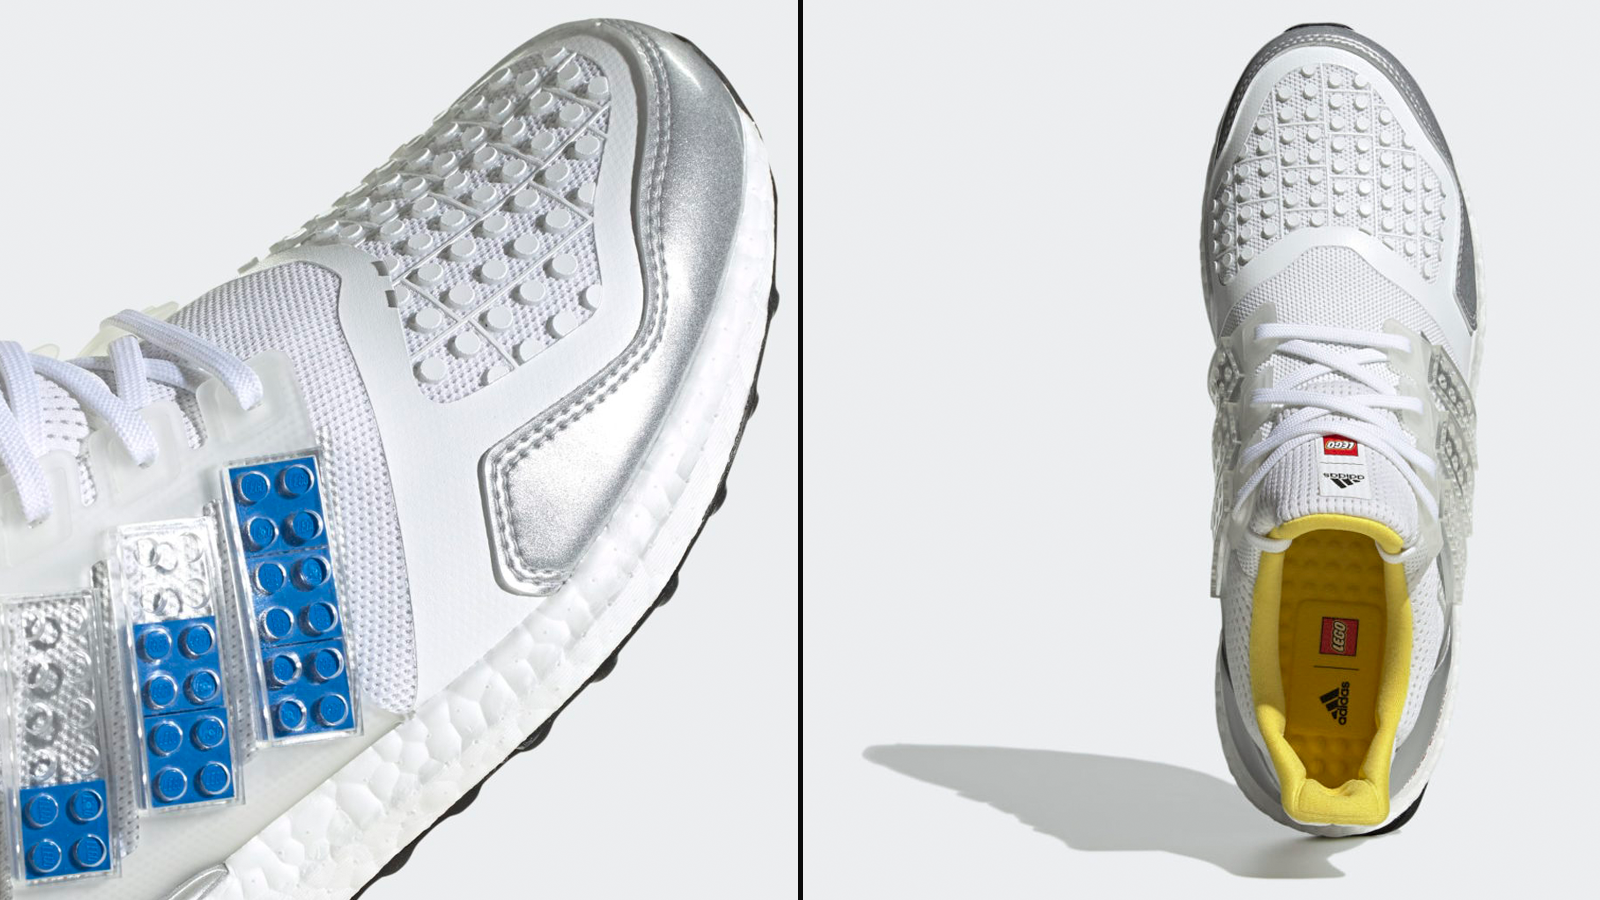 Side and top view of new LEGO x Adidas sneaker